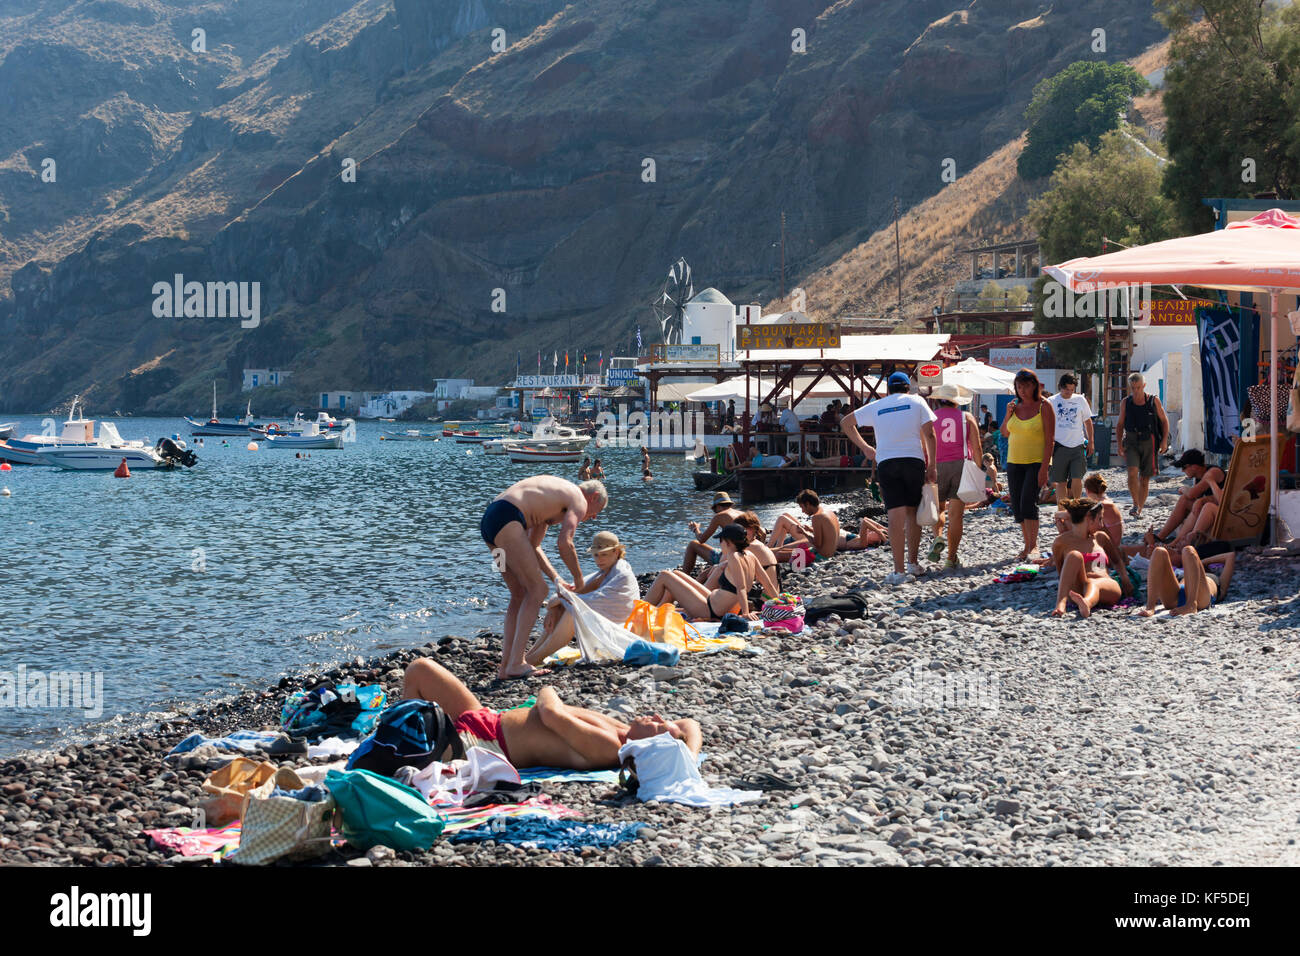 Santorini Beach People High Resolution Stock Photography And Images Alamy